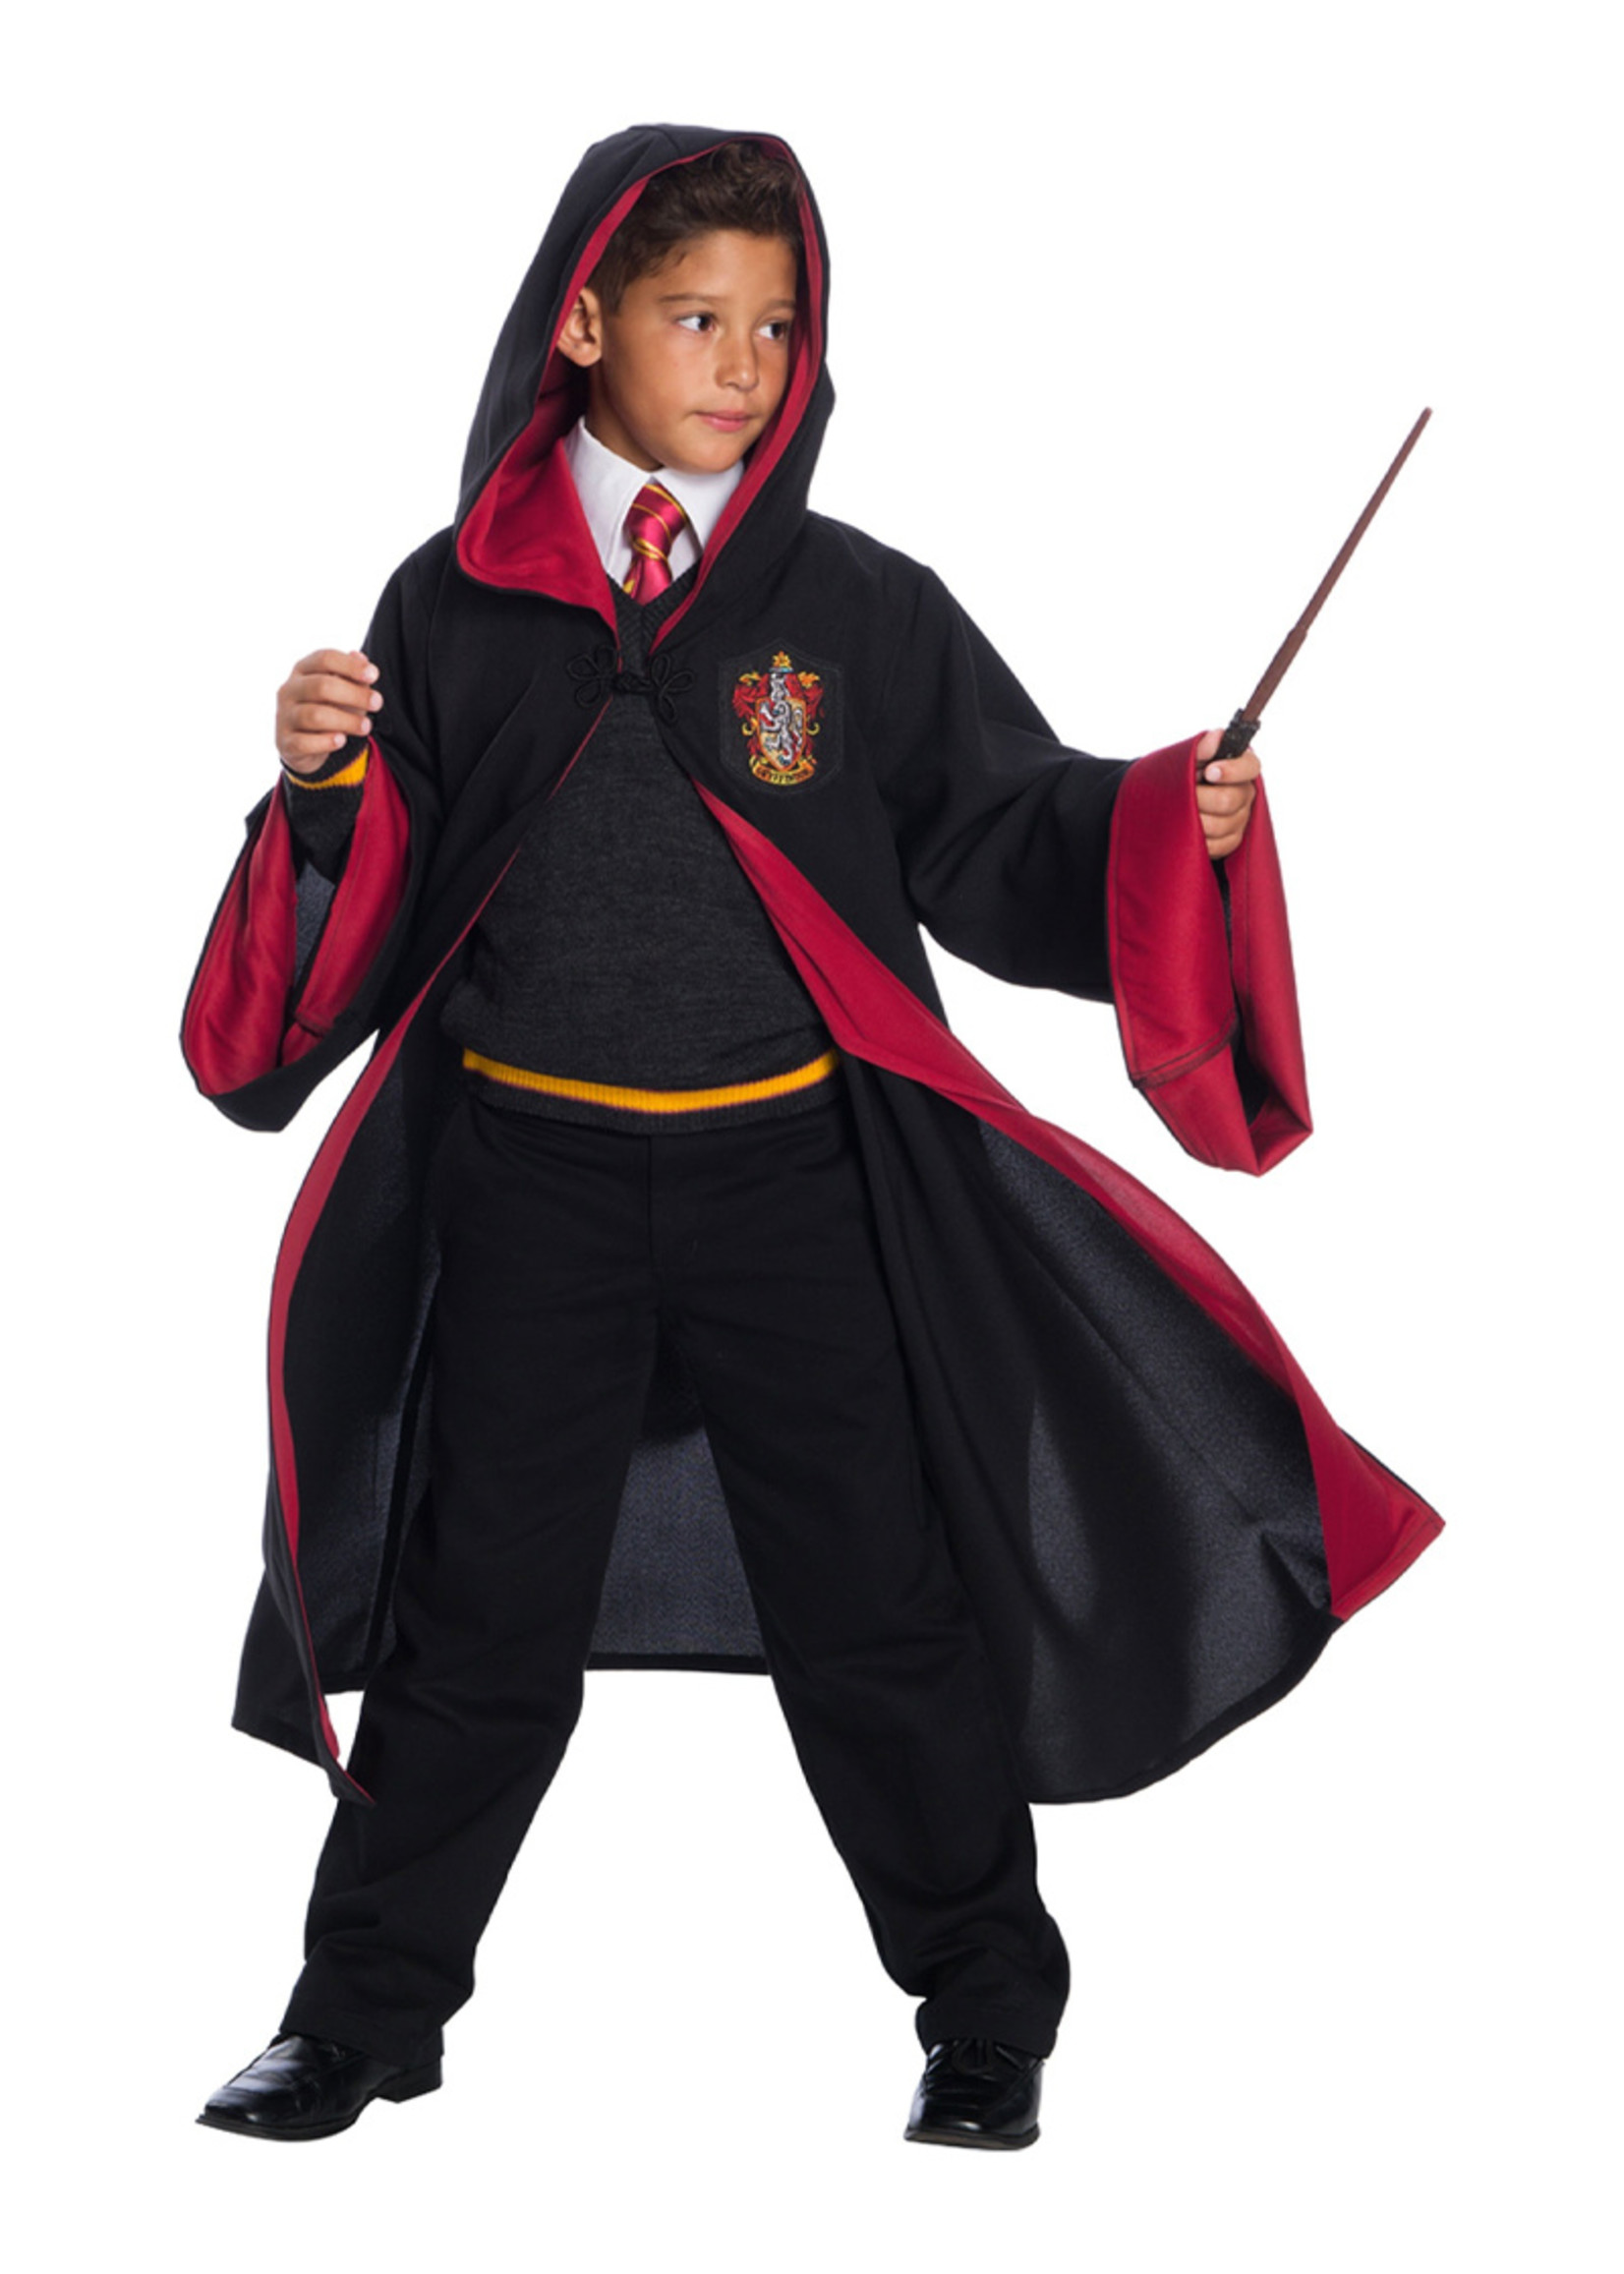 Gryffindor Student Costume - Harry Potter - Child